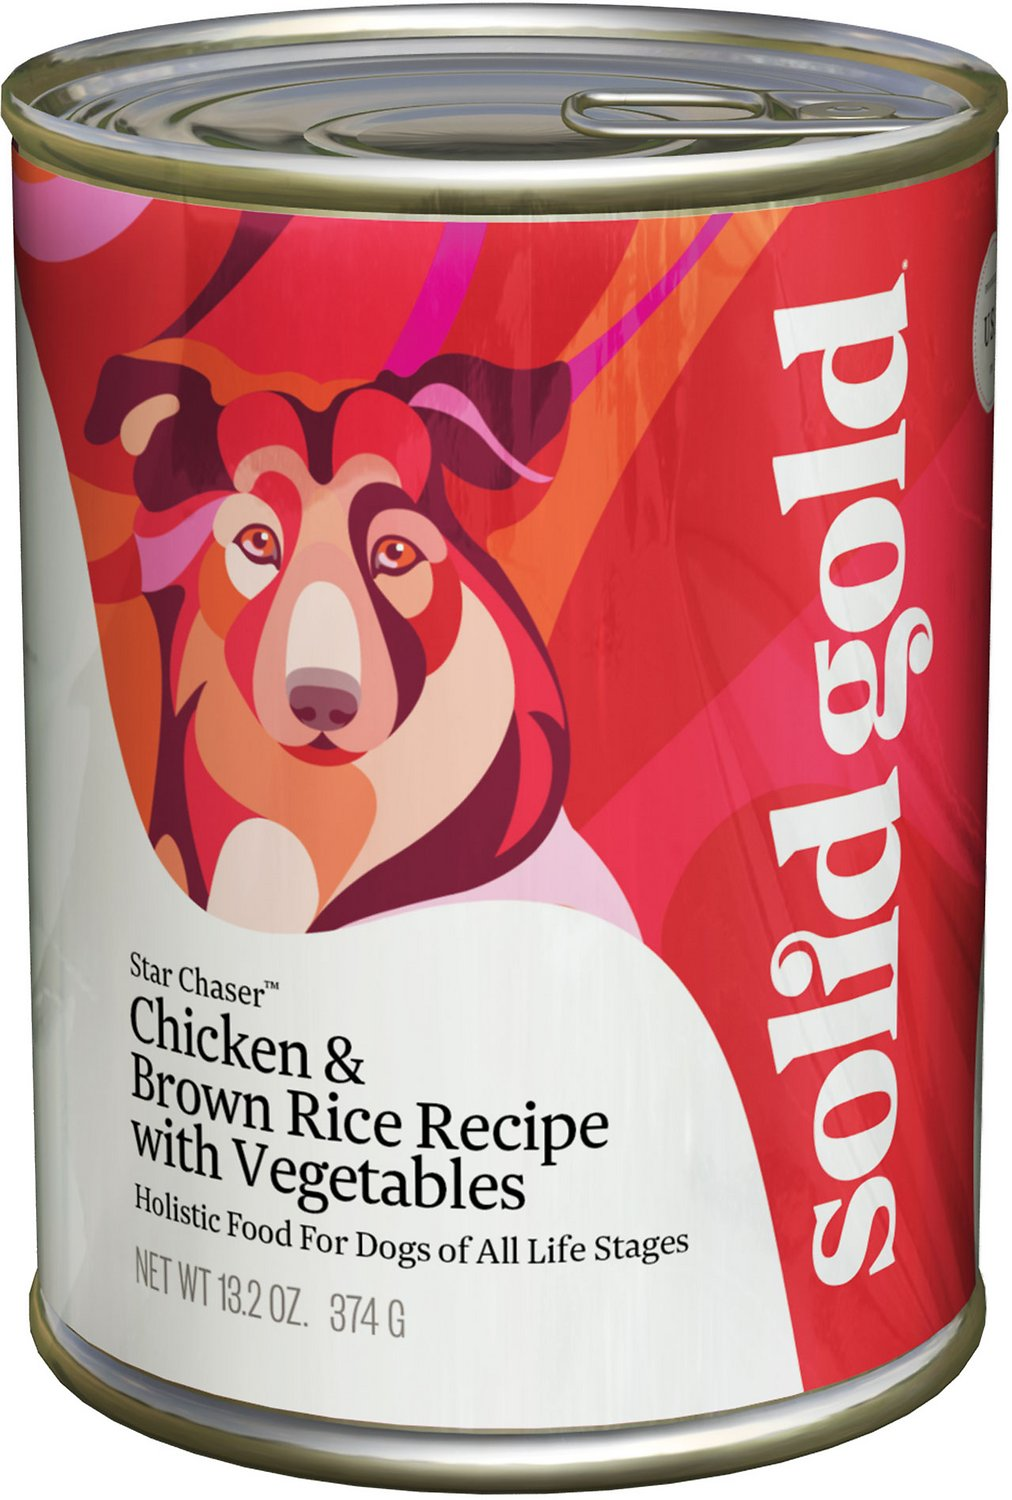 Solid Gold Star Chaser Chicken & Brown Rice Recipe with Vegetables Canned Dog Food, 13.2-oz